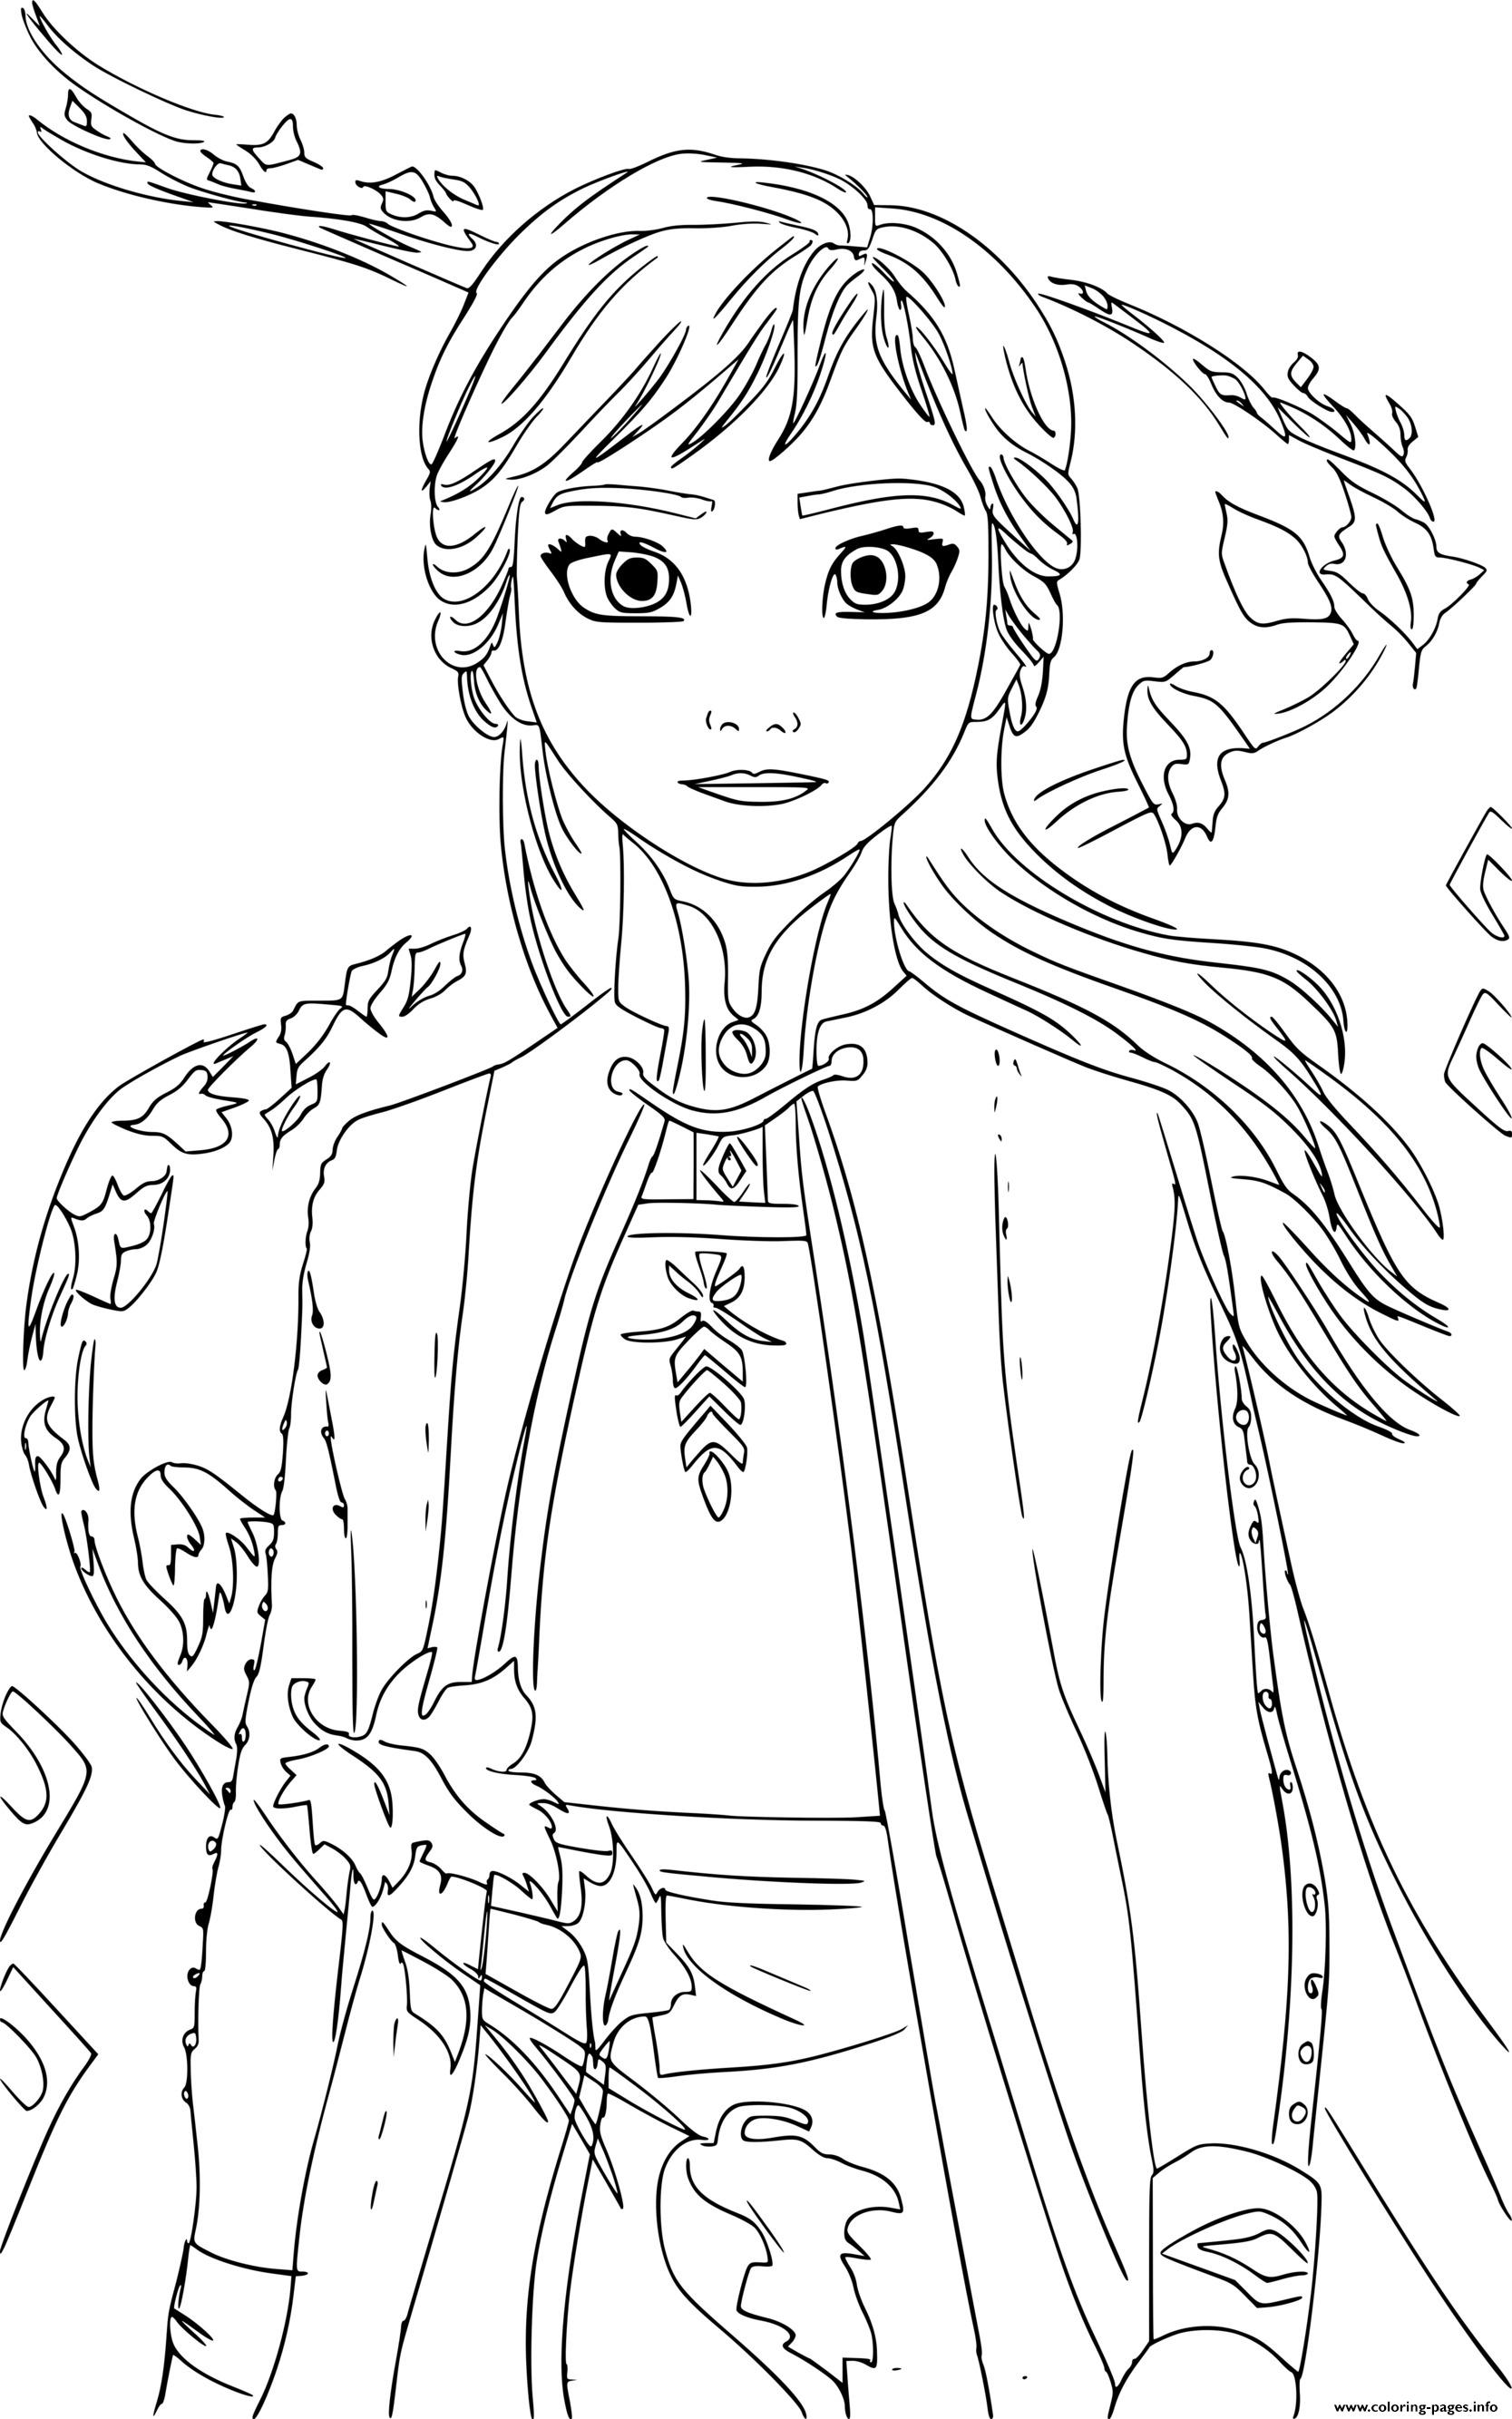 Anna Frozen 2 By Cristina Picteaza Coloring Pages Printable